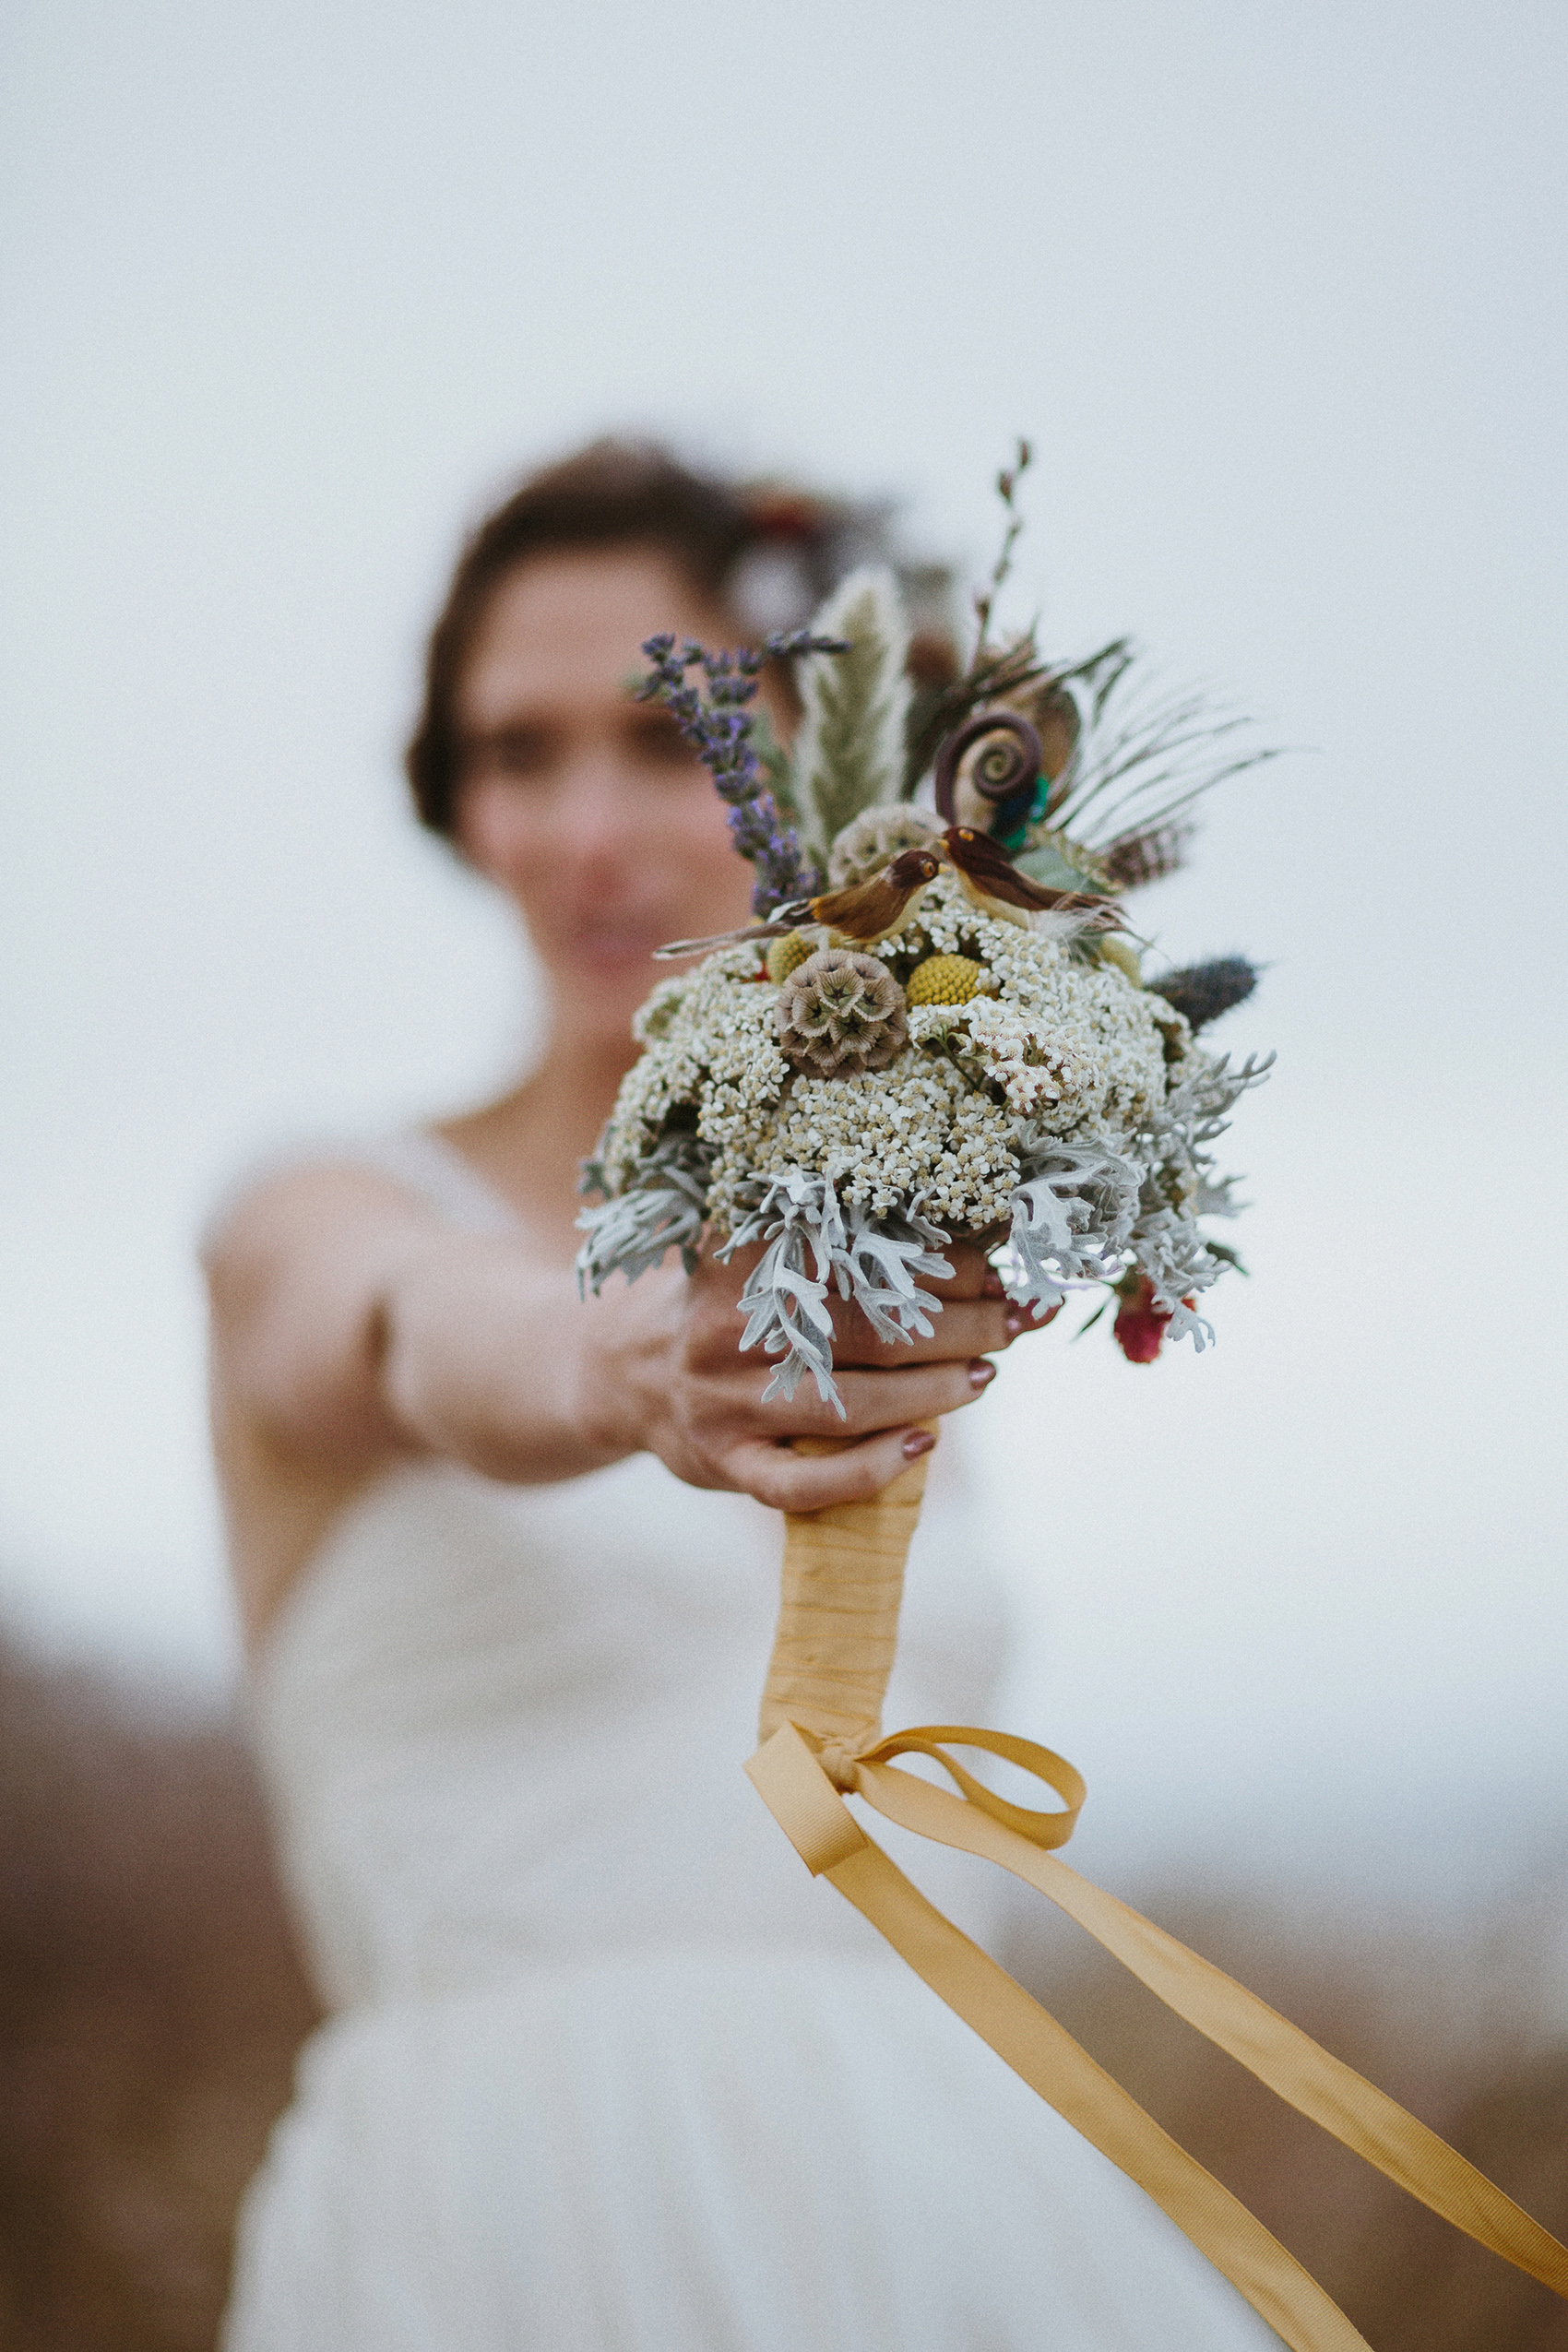 Florist-Approved Ideas for Using Dried Flowers in Your Wedding Decorations